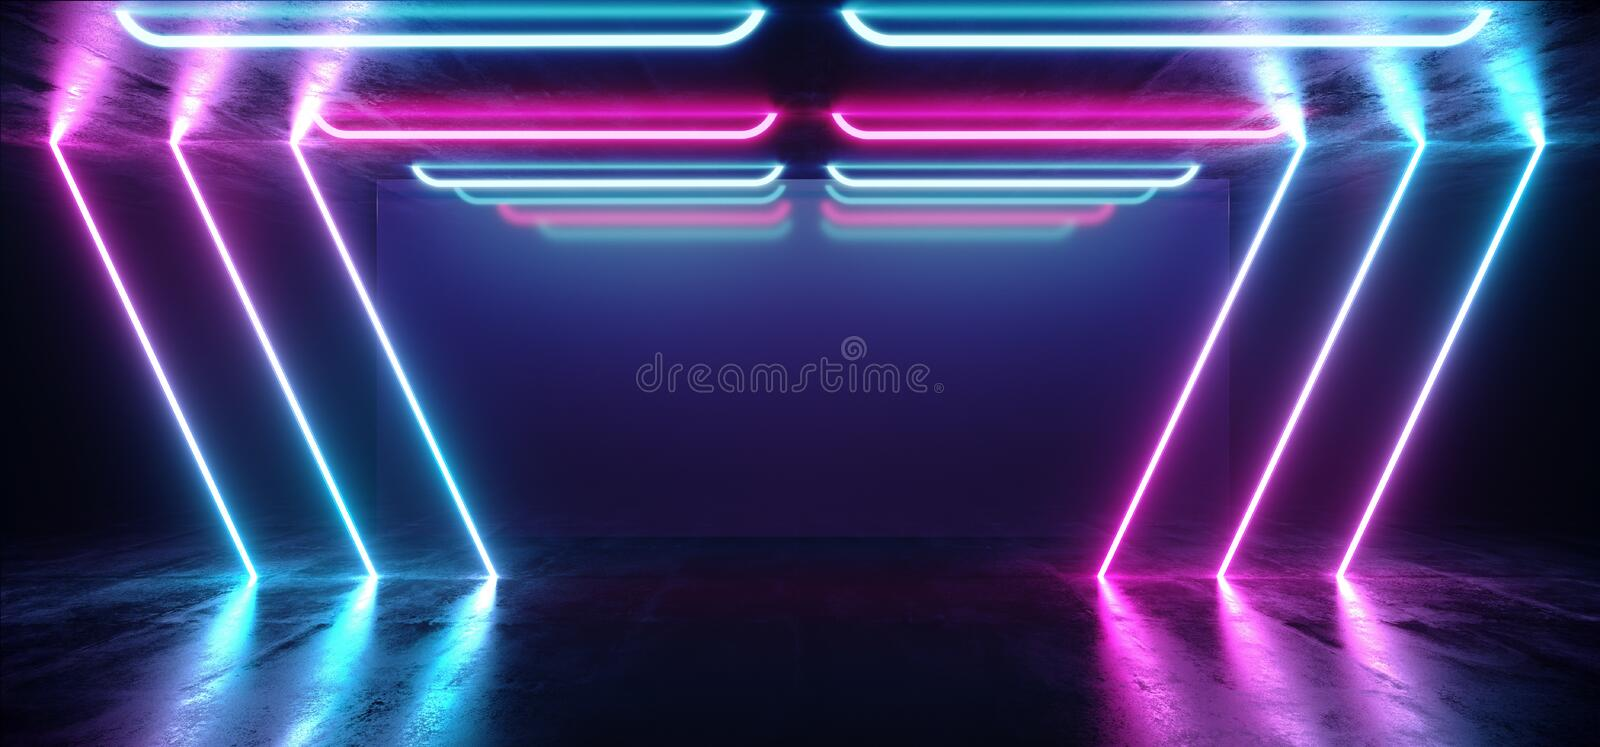 Fluorescent Vibrant Neon Futuristic Sci Fi Glowing Purple Blue Virtual Reality Cyber Tunnel Concrete Grunge Floor Room Hall Studio stock illustration